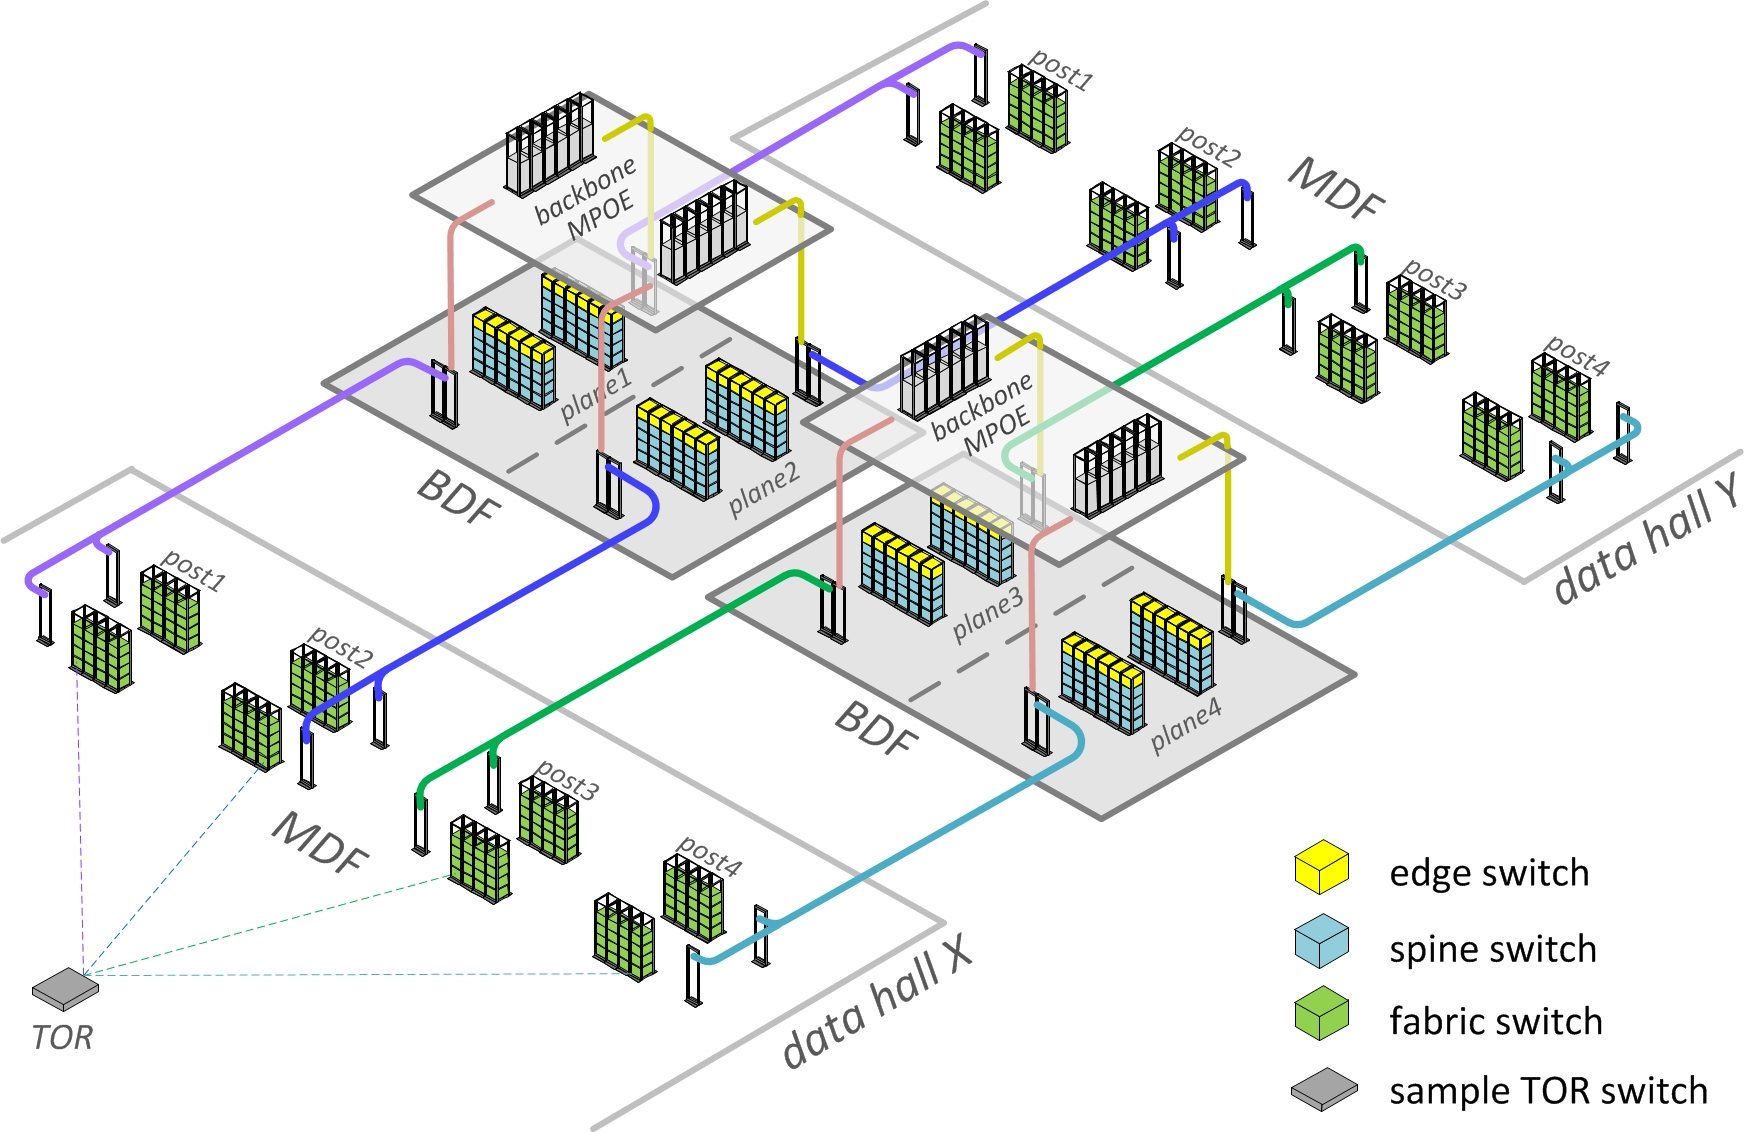 Introducing Data Center Fabric The Next Generation Facebook Wireless Campus Network Diagram Figure 3 Schematic Optimized Datacenter Physical Topology